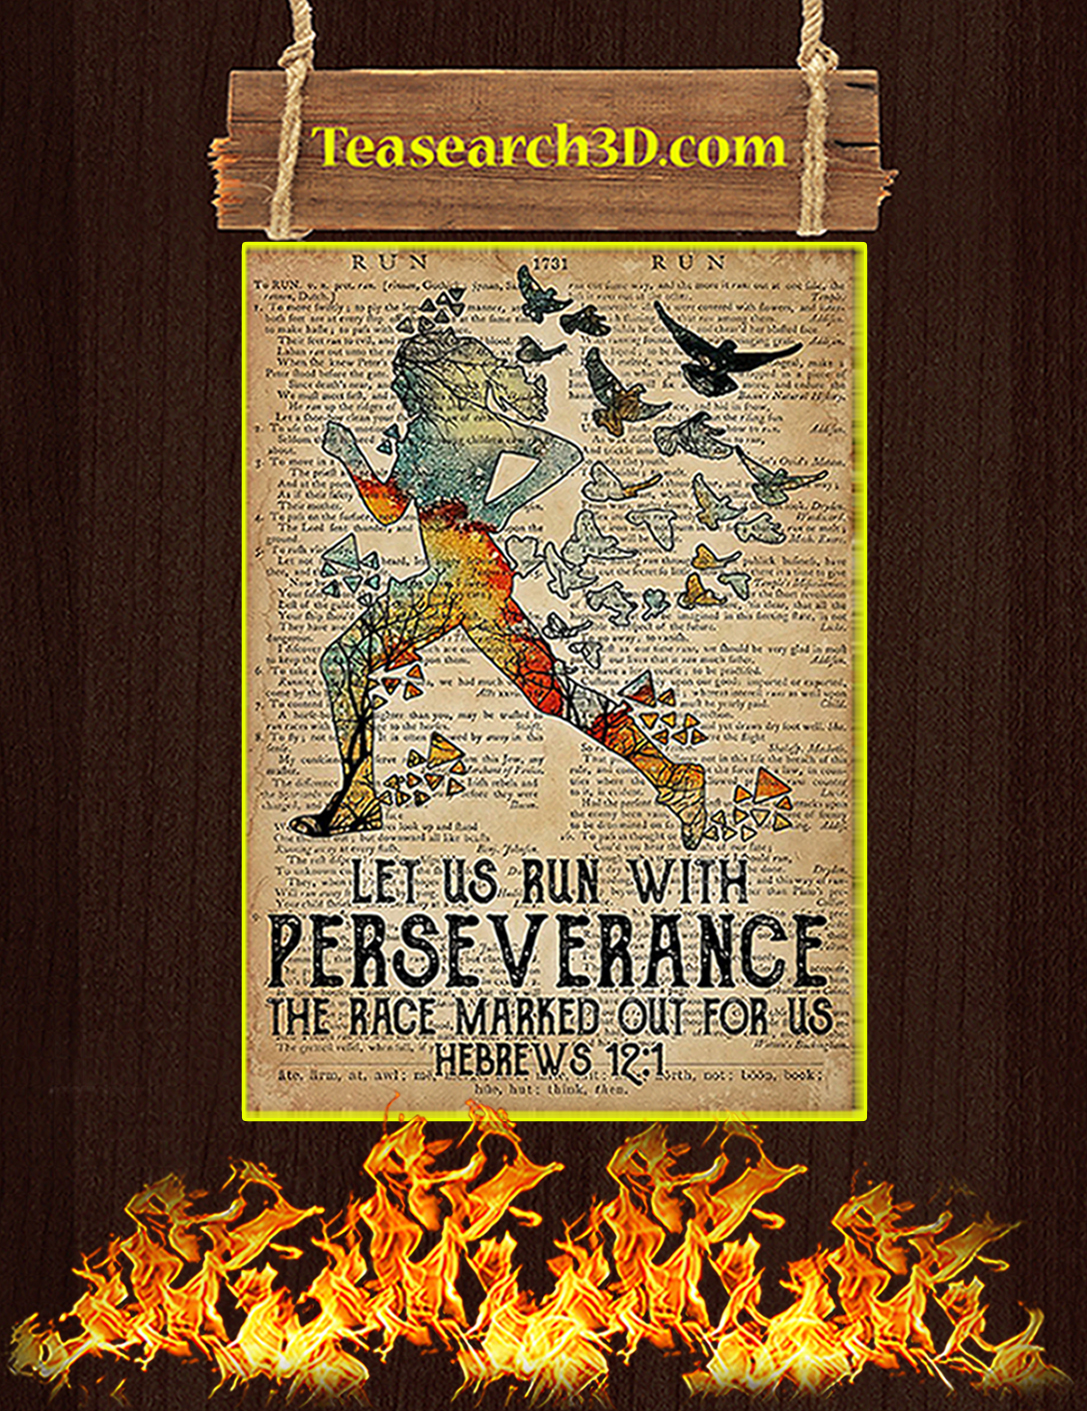 Running let us run with perseverance poster A2